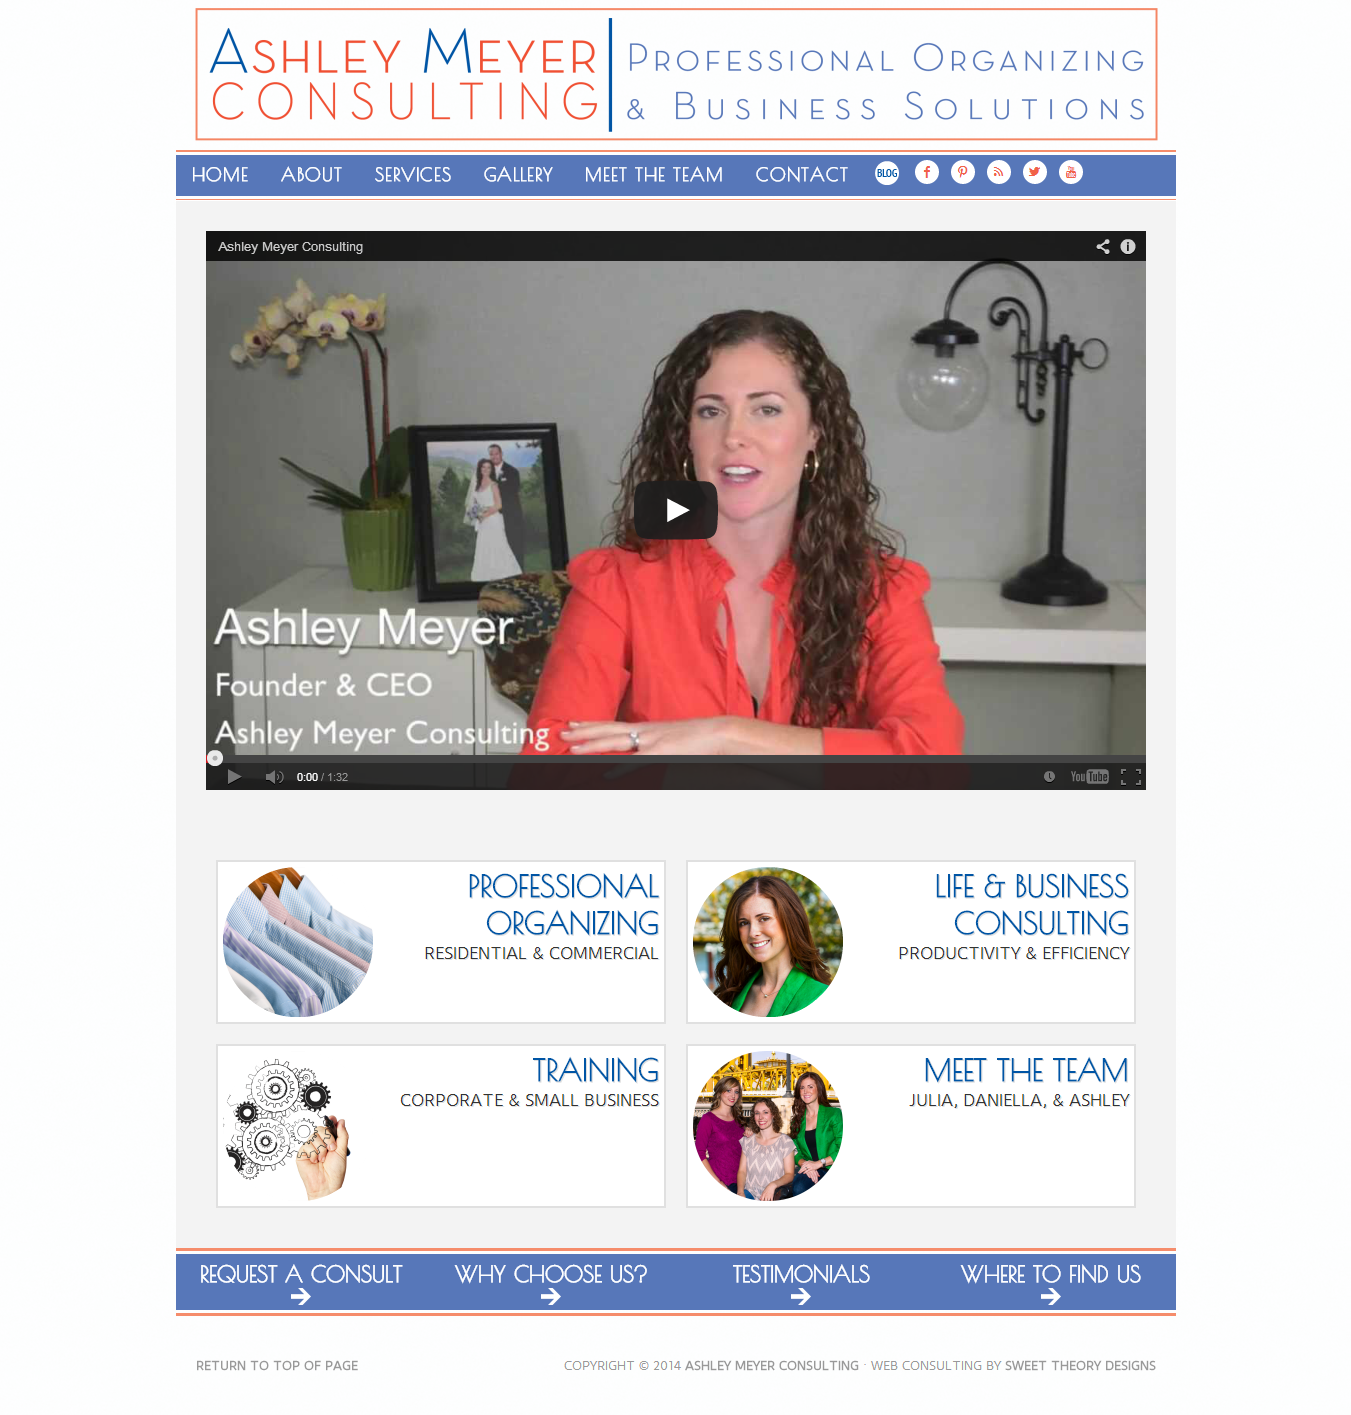 Ashley Meyer Consulting